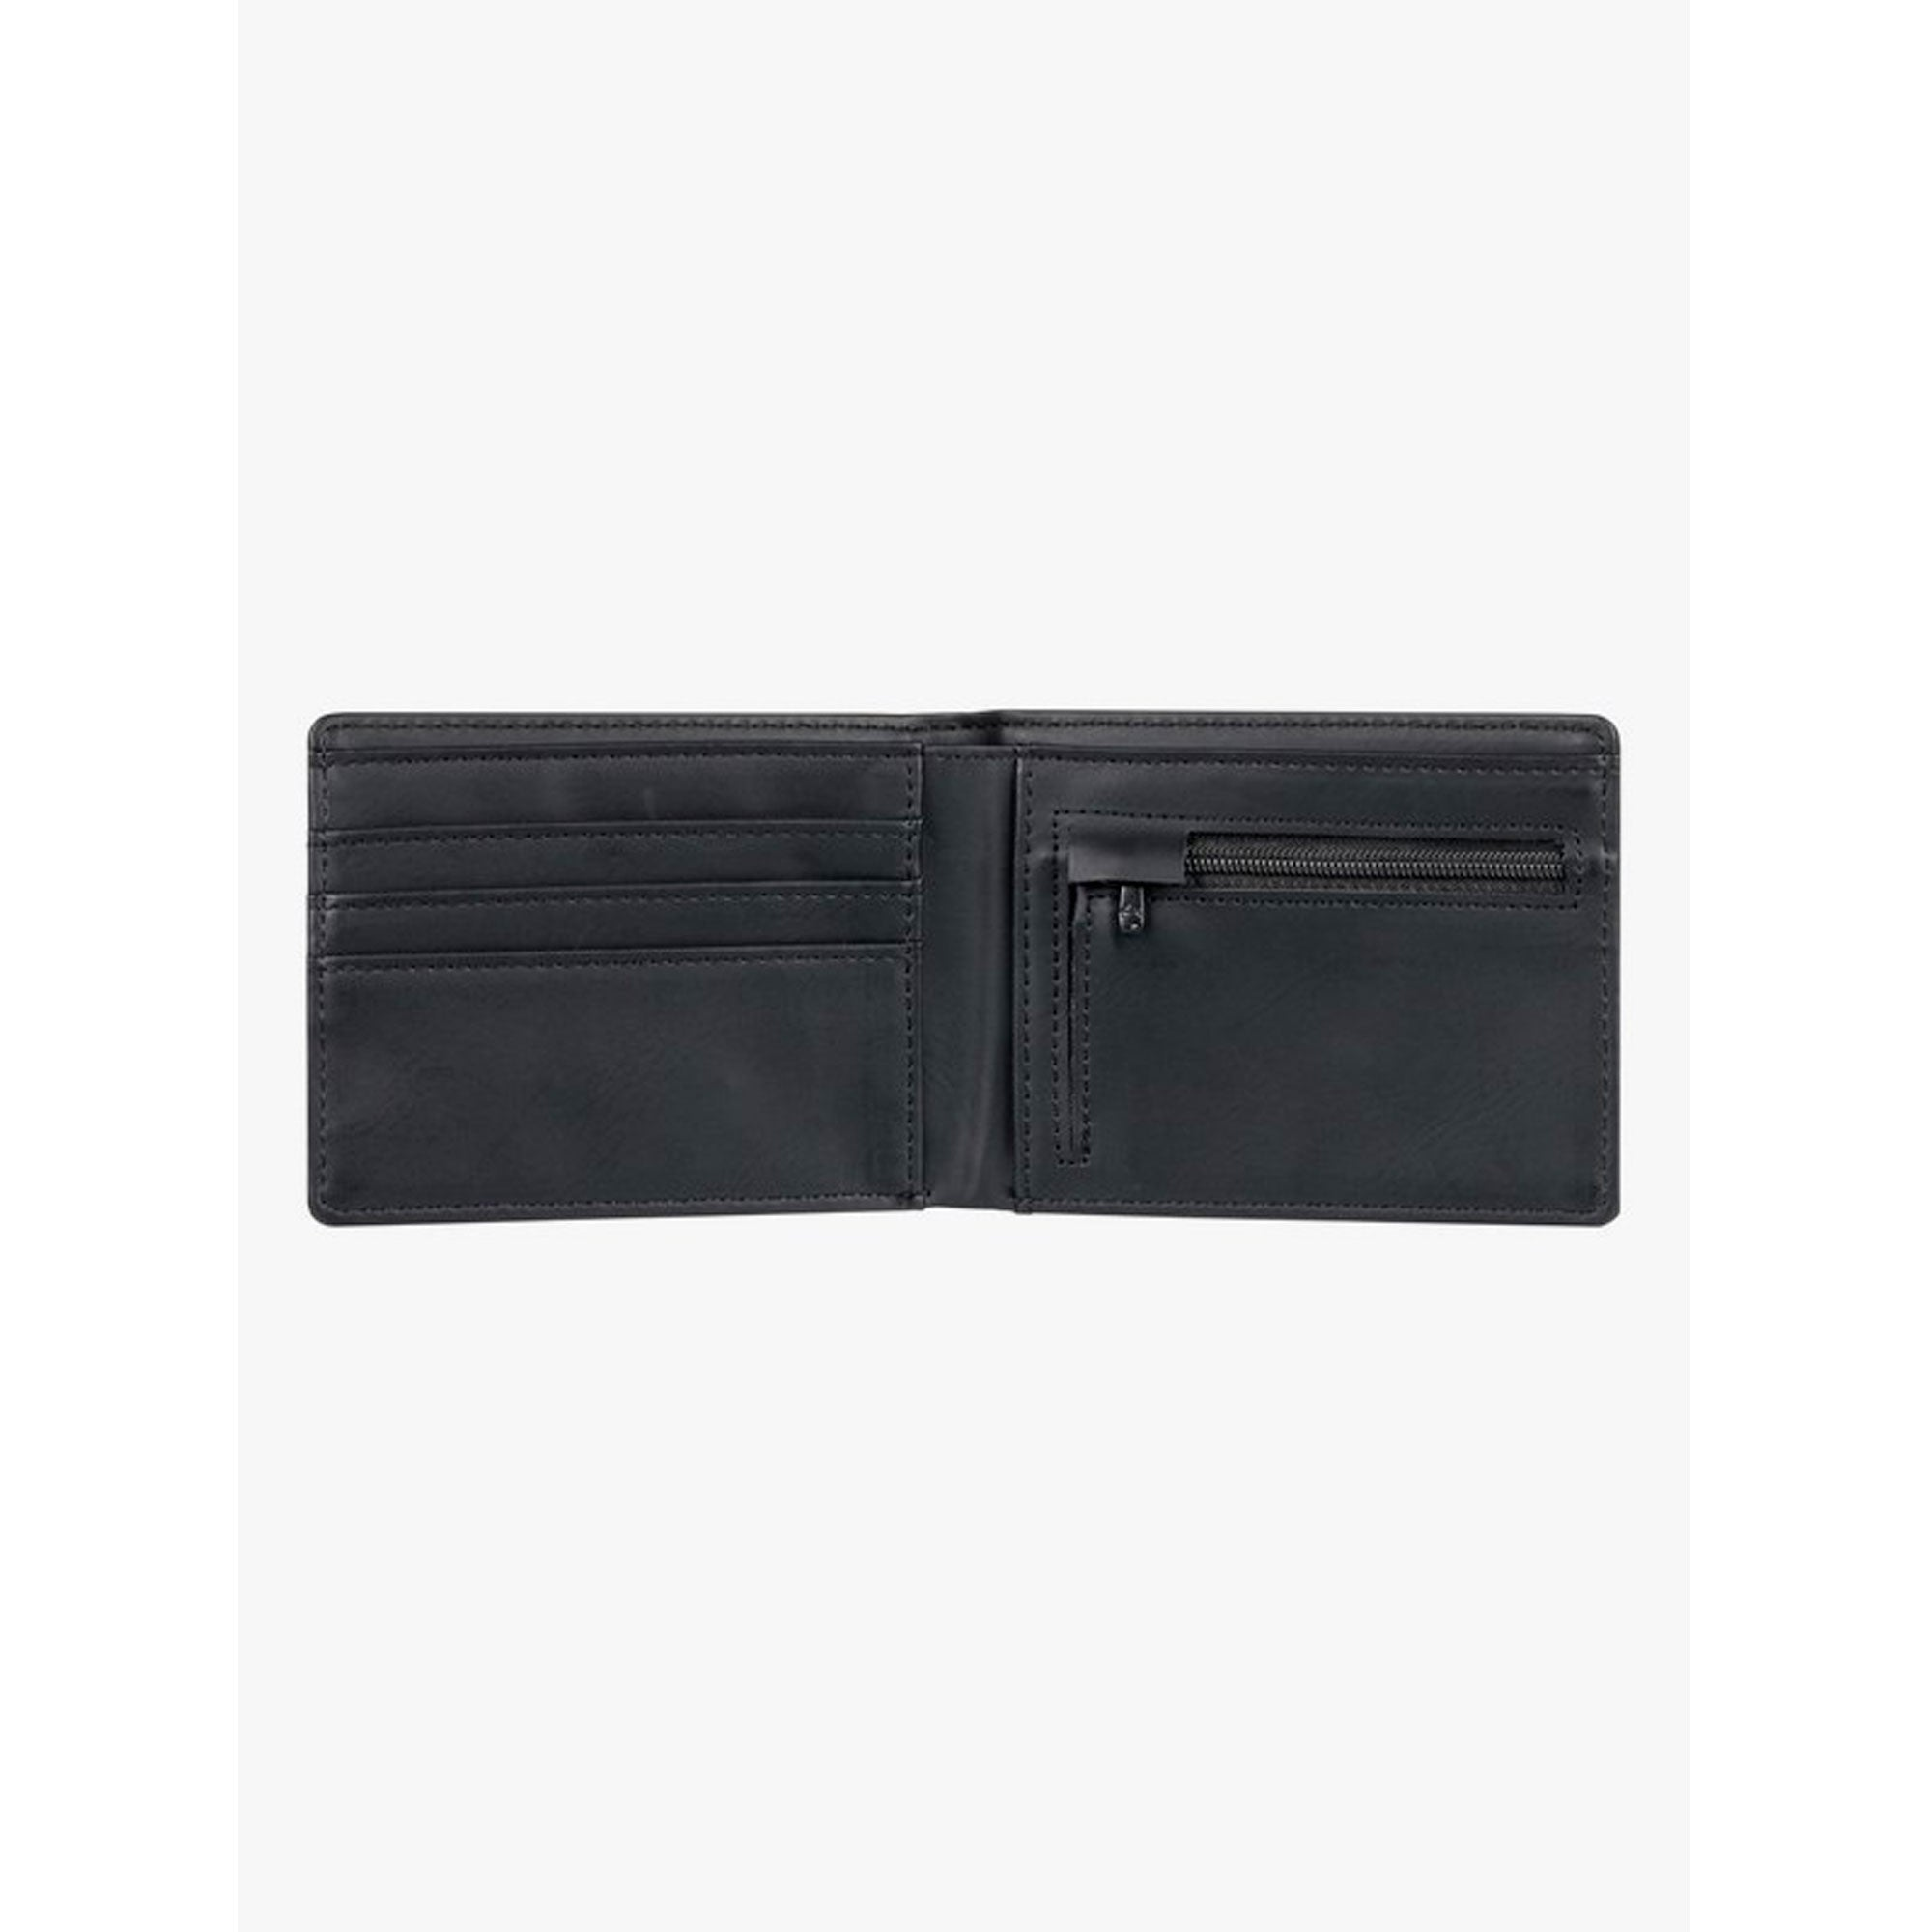 Quiksilver Slim Vintage Men's Wallet - Black